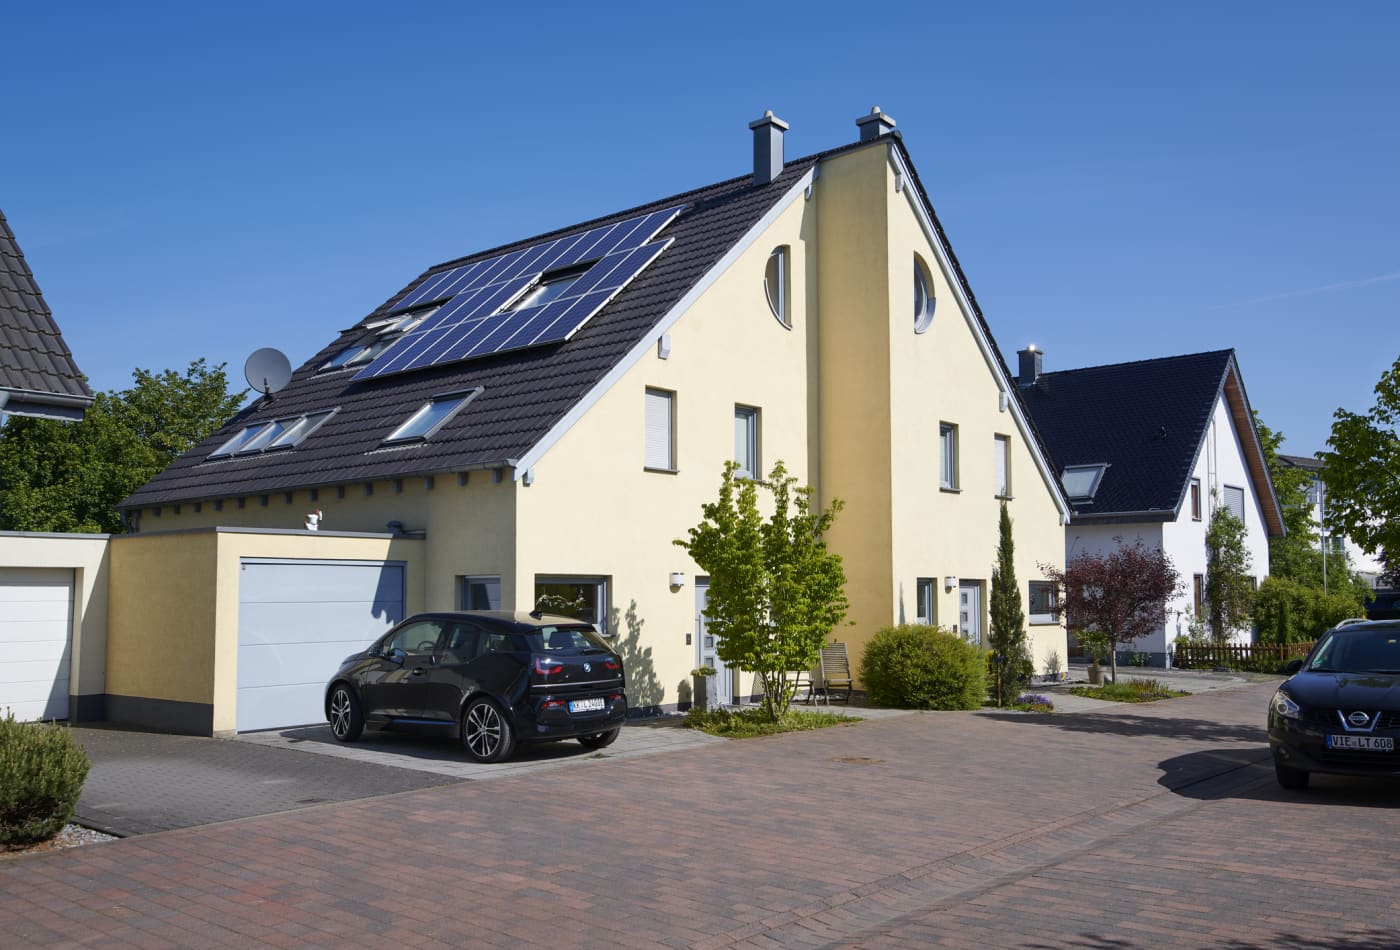 EV charging to solar panels: How connected tech is changing the homes we live in